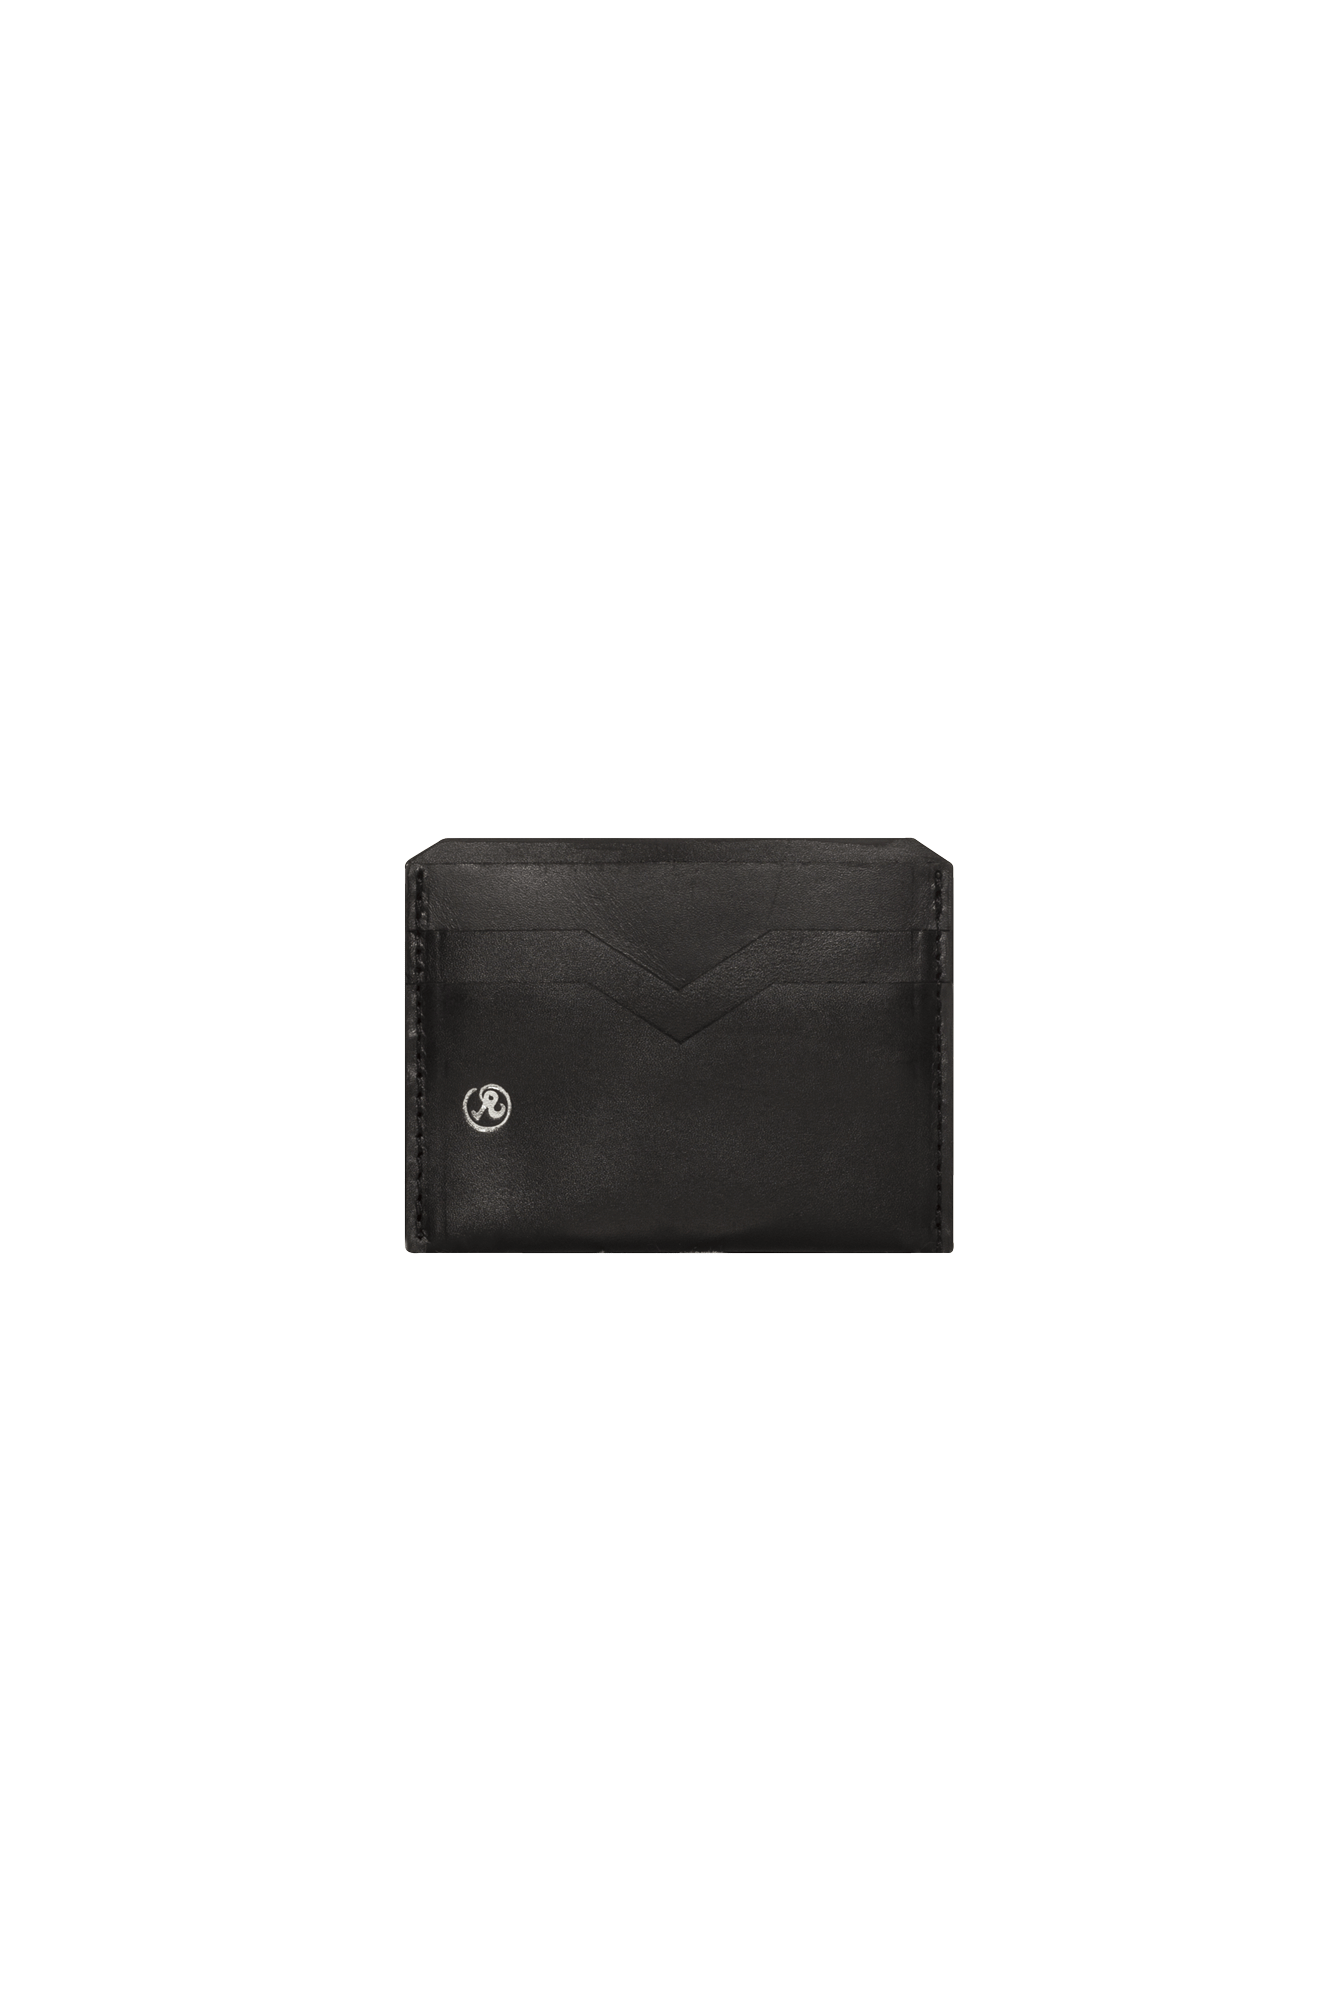 Richardson Mag Miscellaneous Leather Cardholder Black 4202310000#000#BLACK#OS - One Block Down